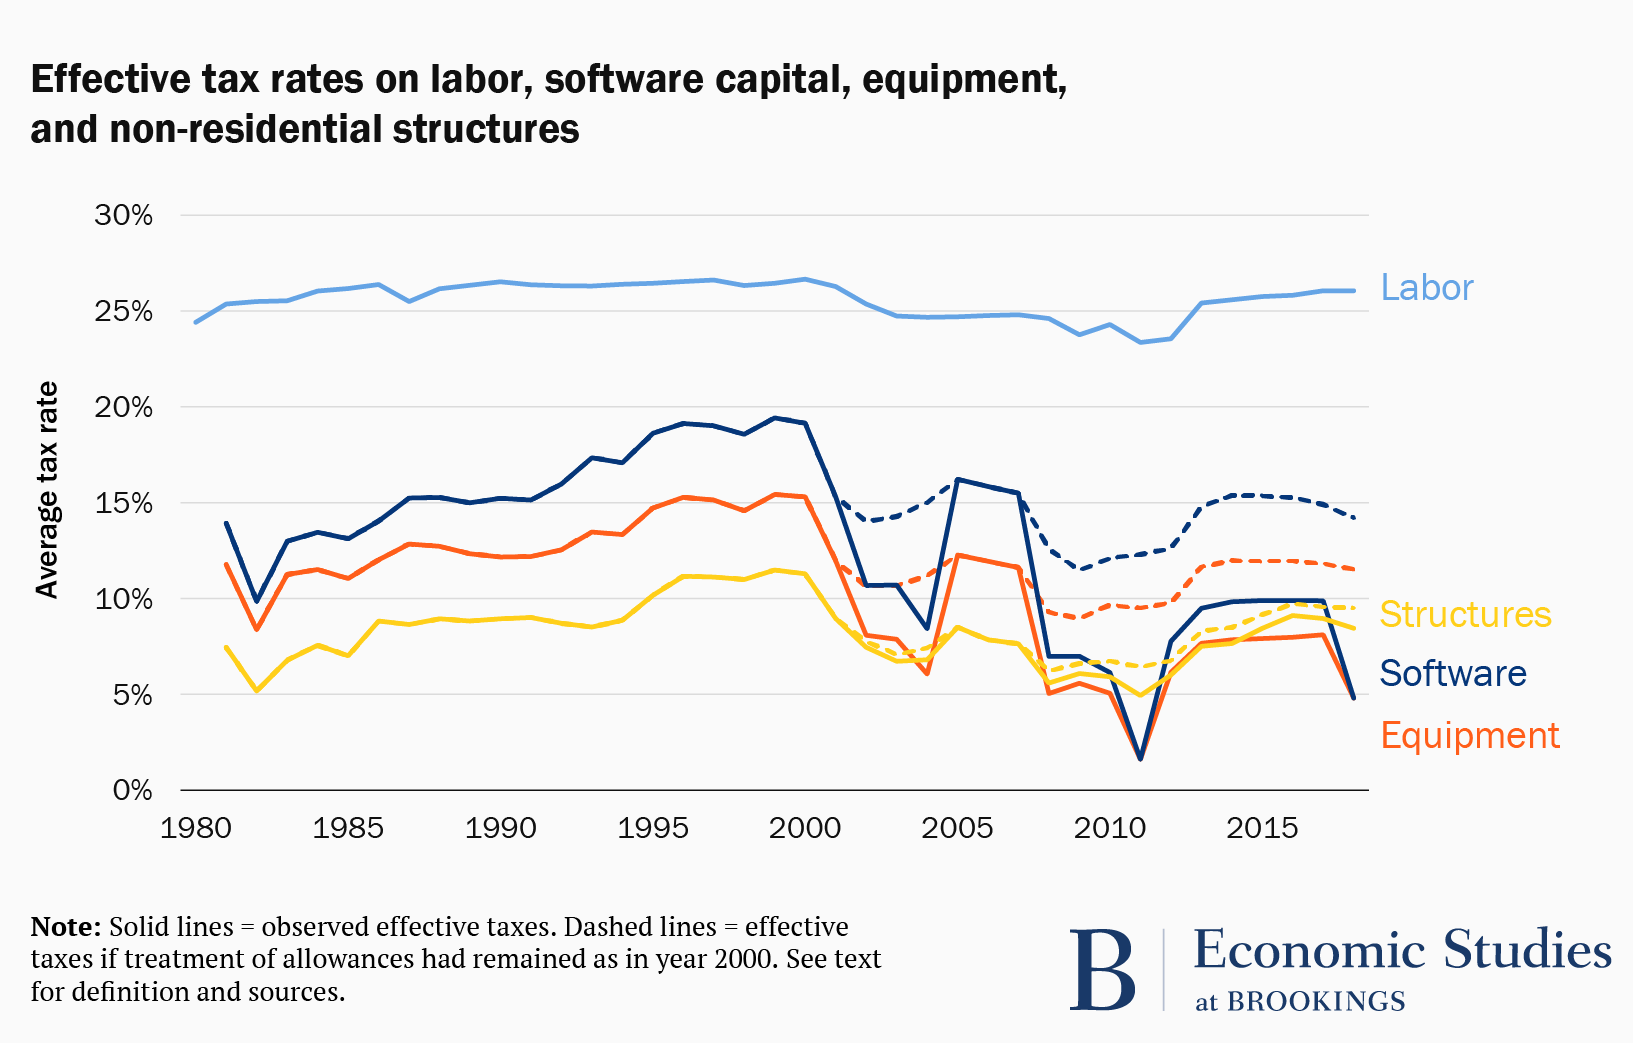 Effective tax rates for labor, capital, etc